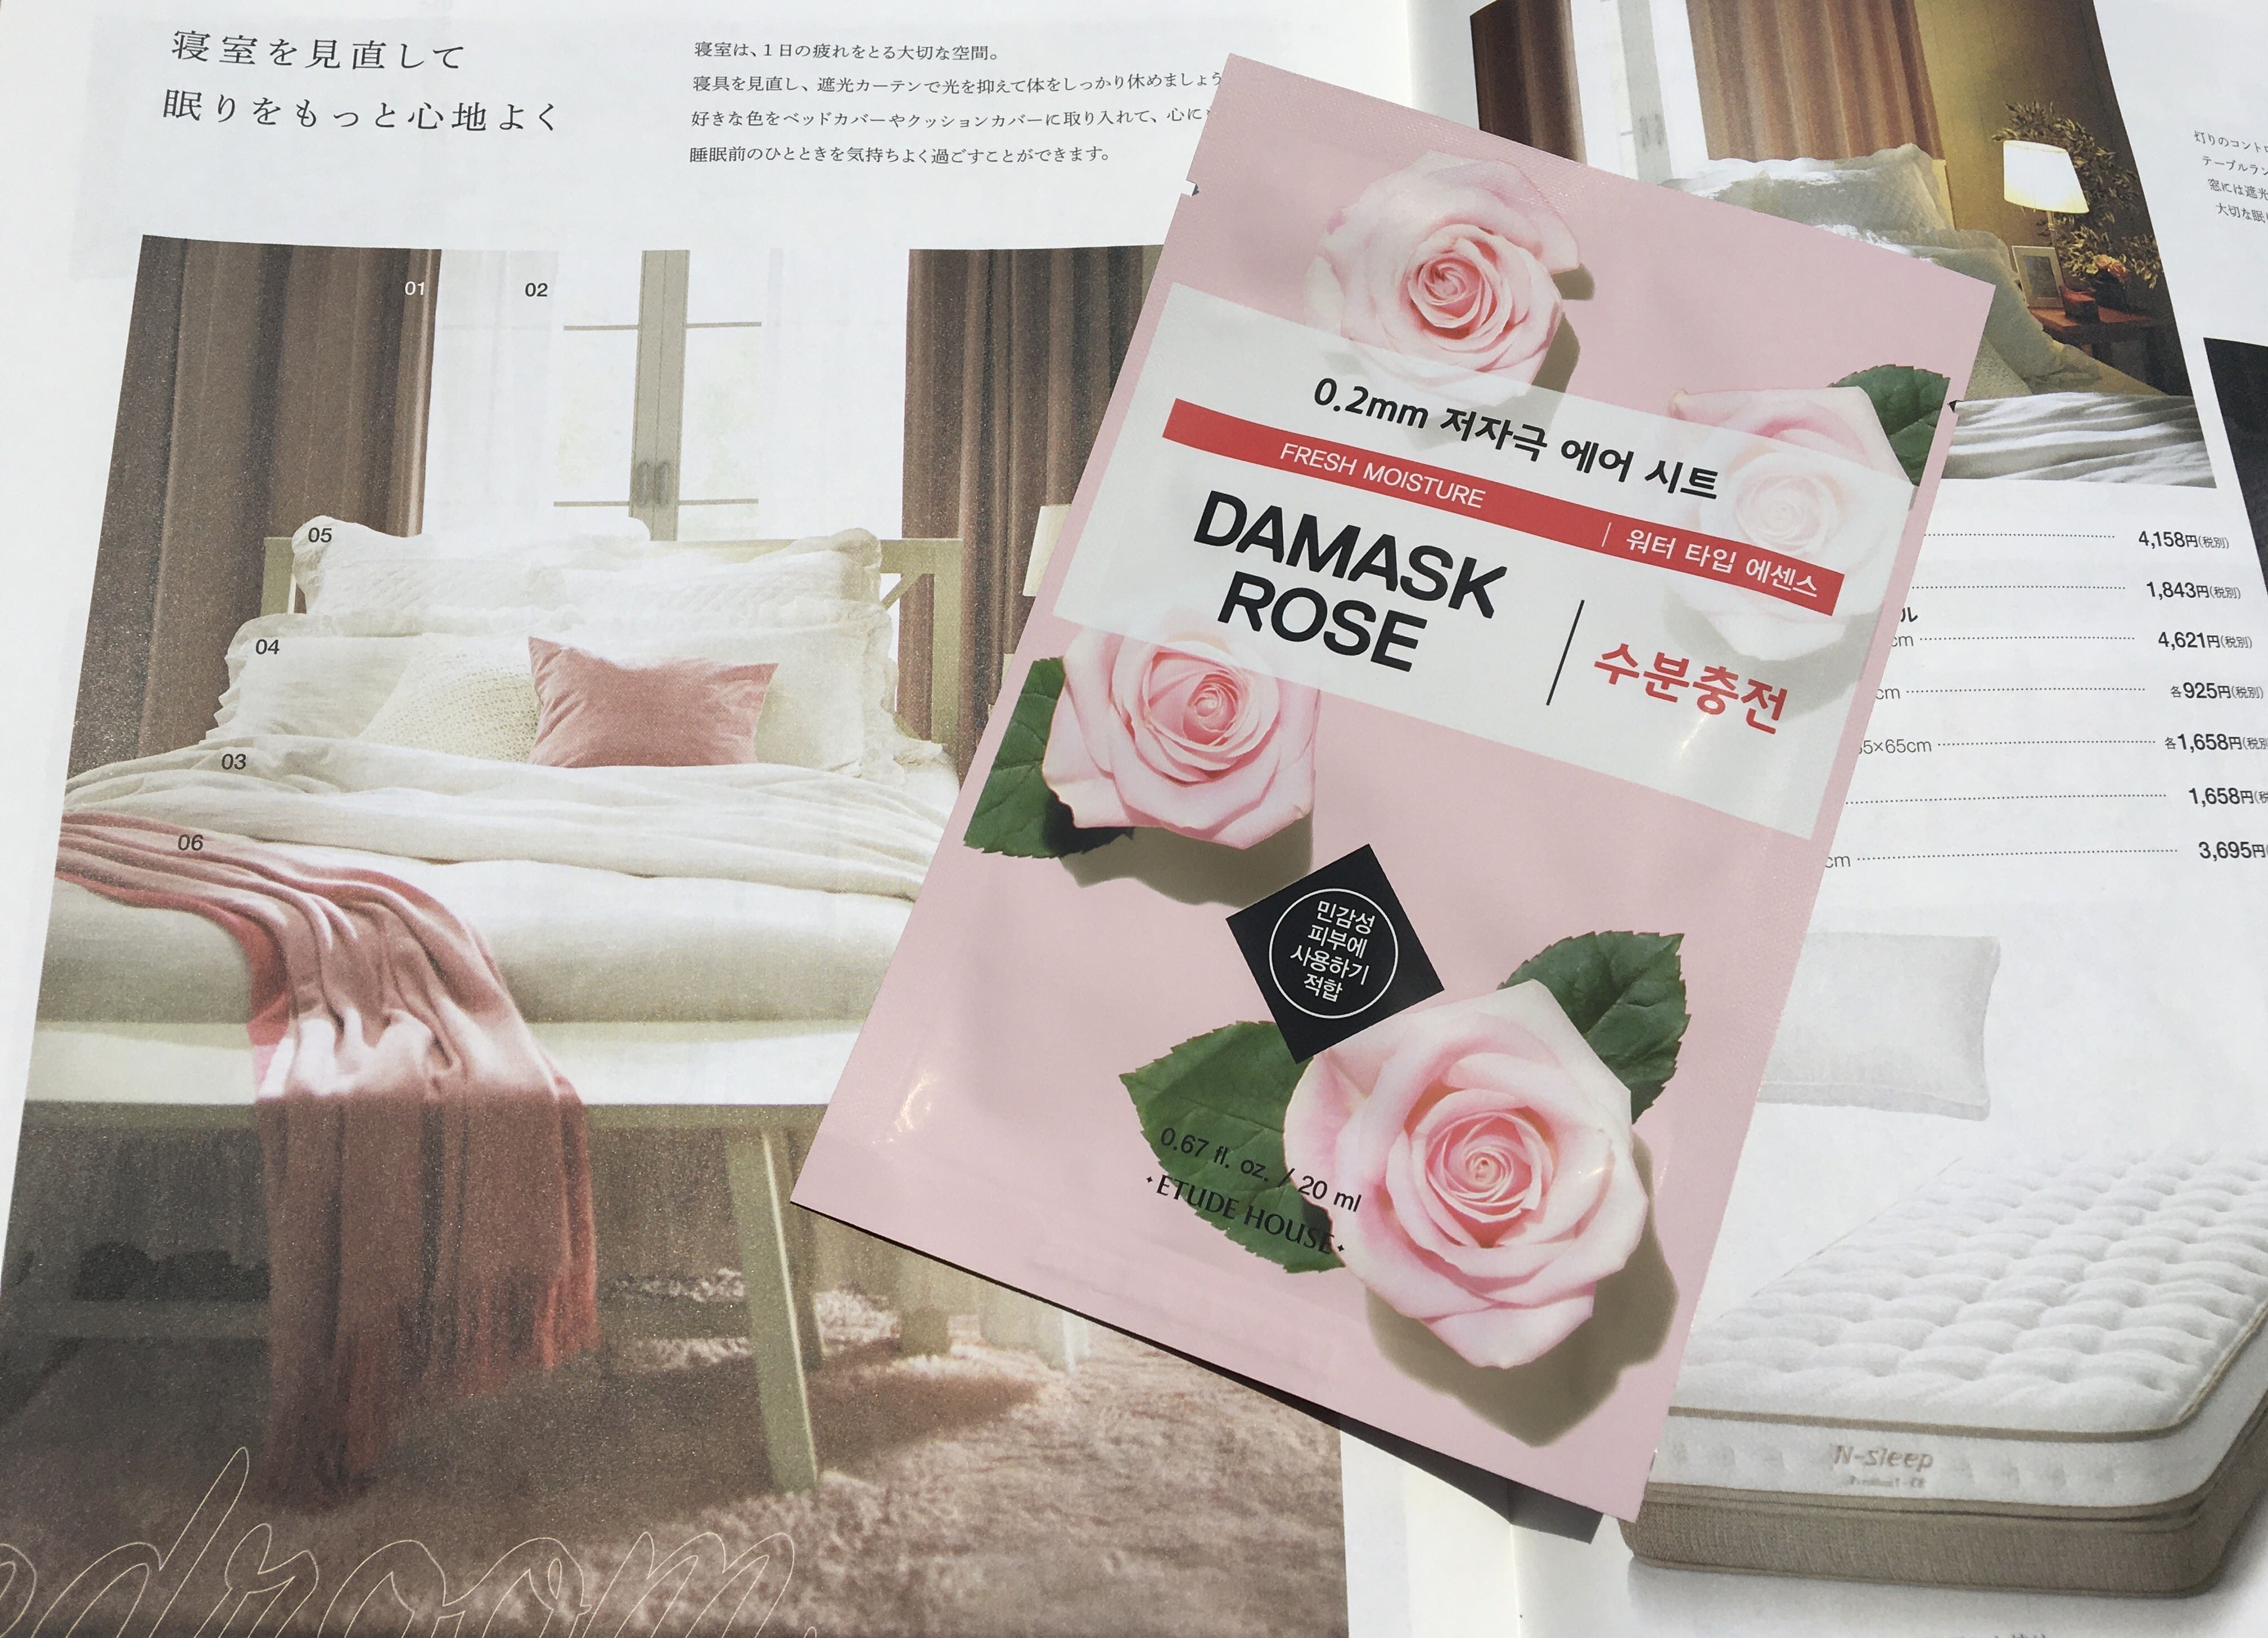 REVIEW | Etude House 0.2 Therapy Air Mask [#Damask Rose]